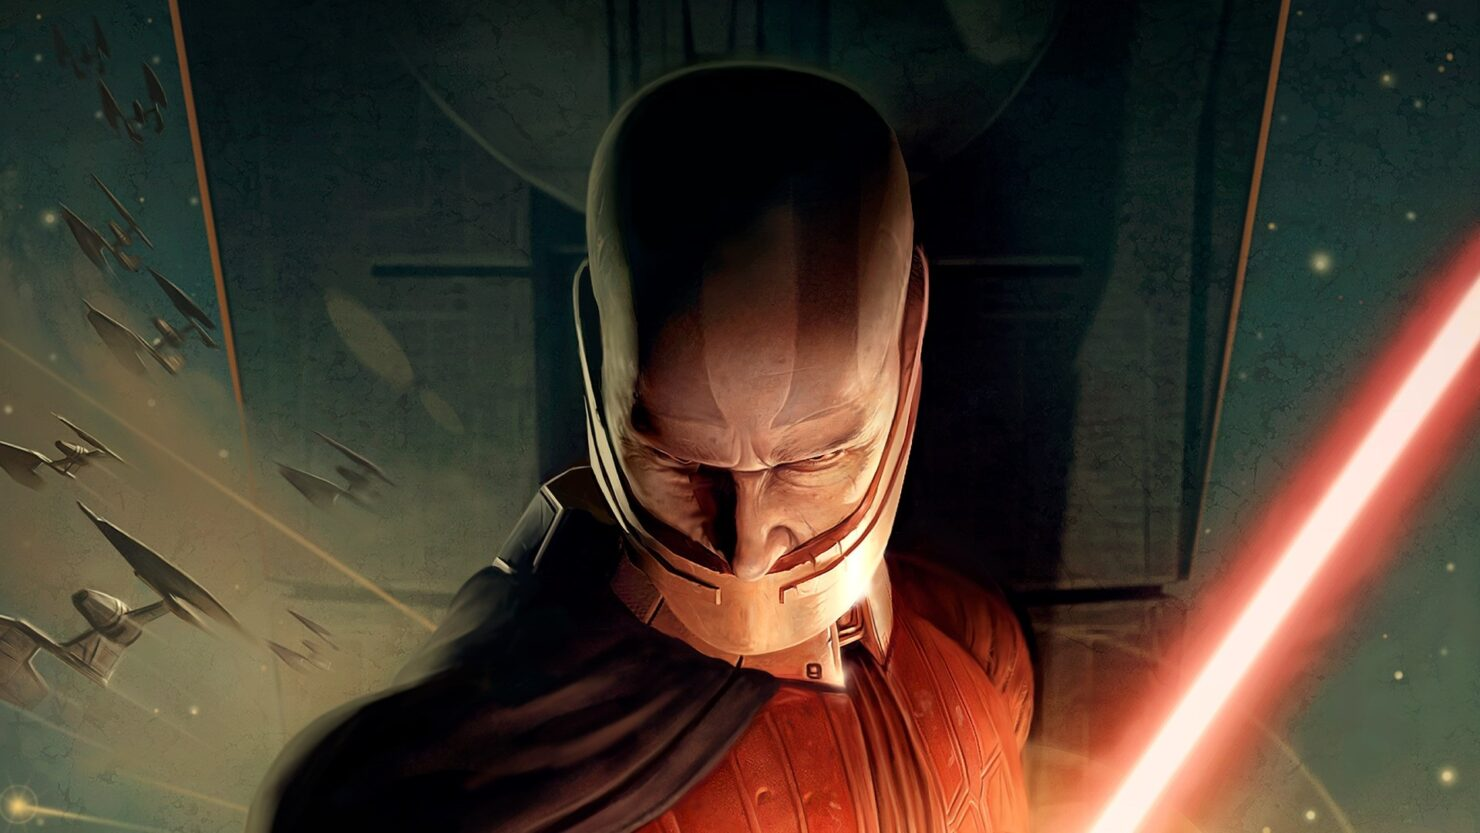 Star Wars KOTOR Knights of the Old republic consoles re-release